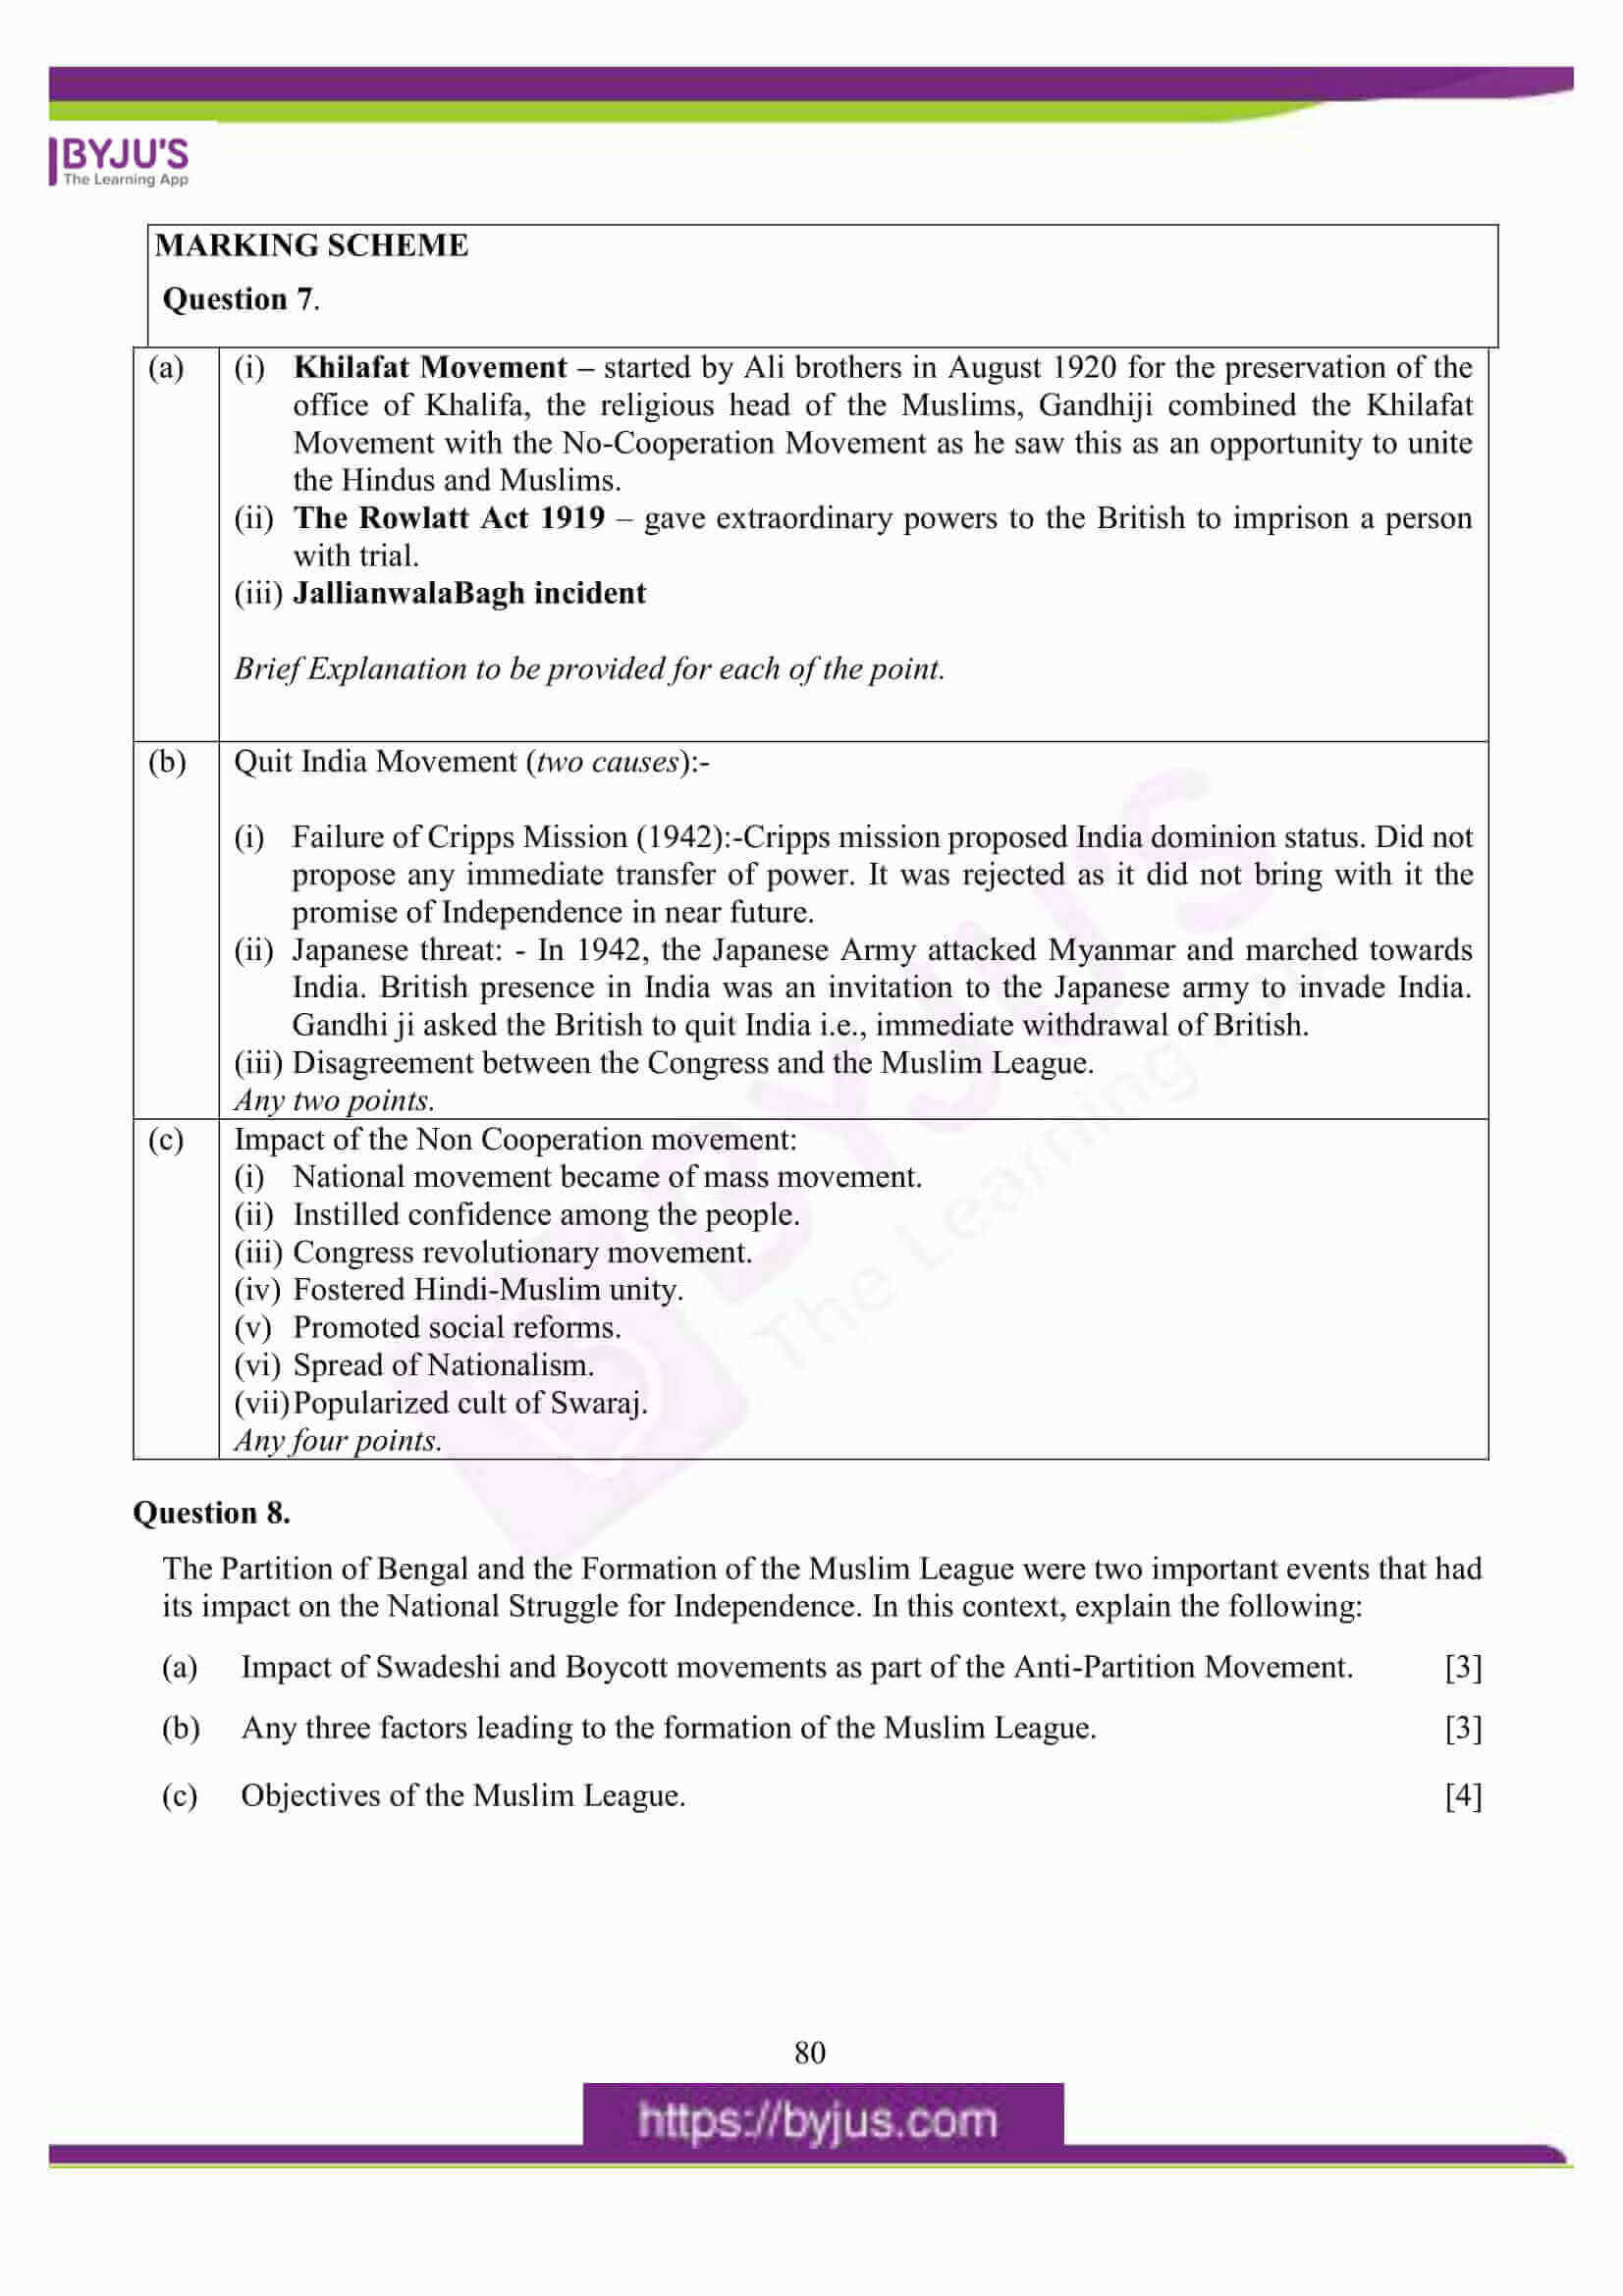 icse class 10 his and civics question paper solution 2016 13